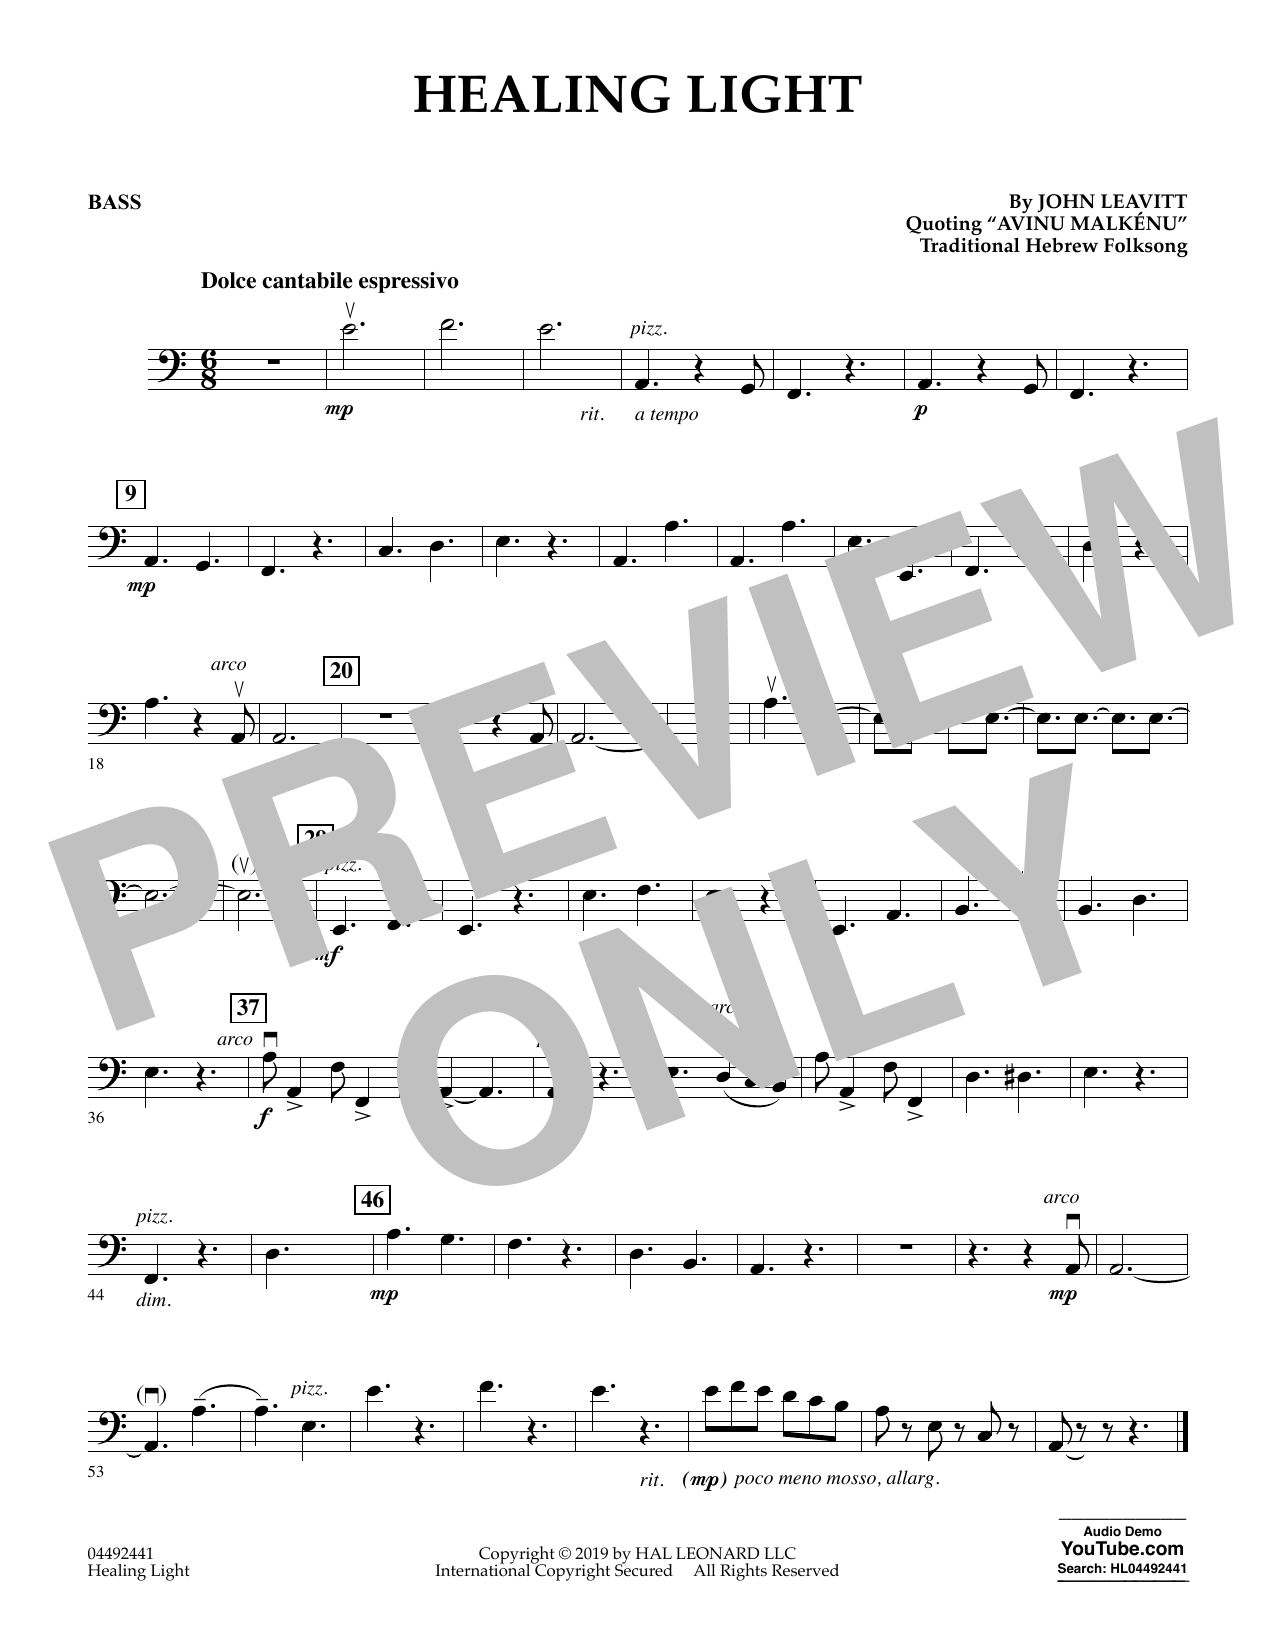 John Leavitt Healing Light - Bass sheet music preview music notes and score for Orchestra including 1 page(s)